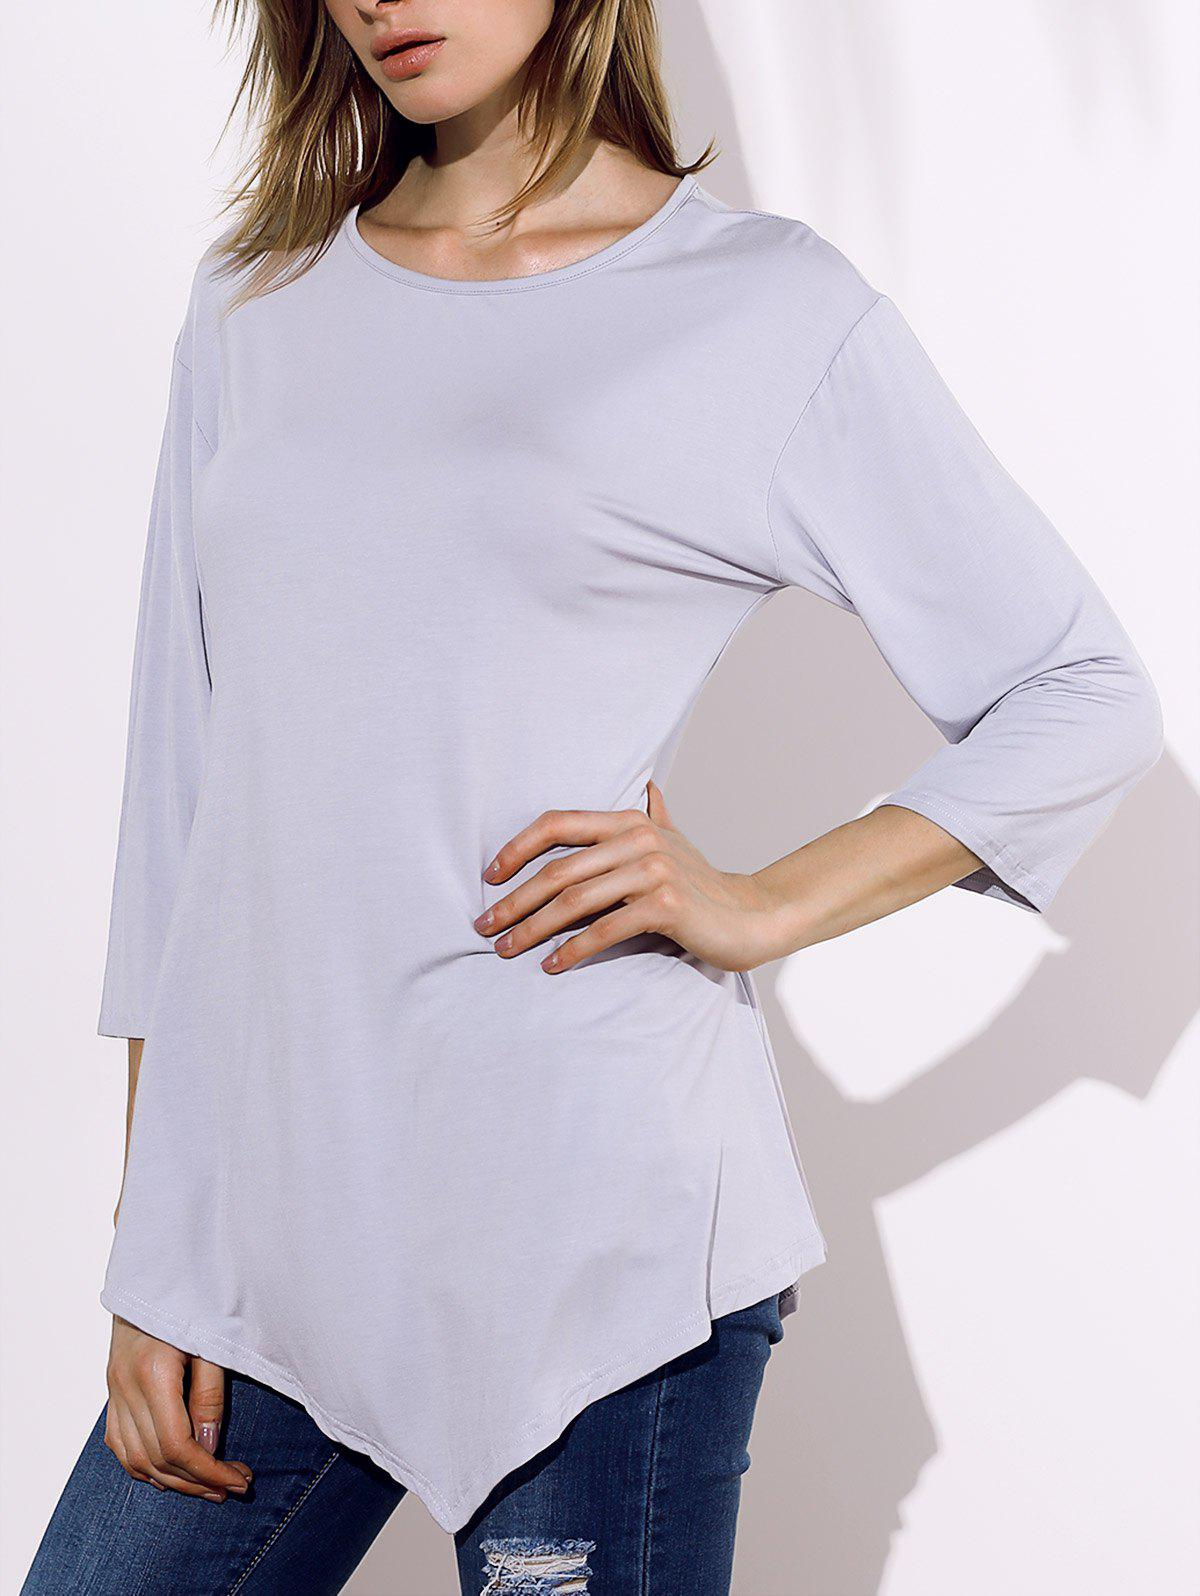 Casual 3/4 Sleeve Round Collar Irregular Solid Color Women's T-Shirt